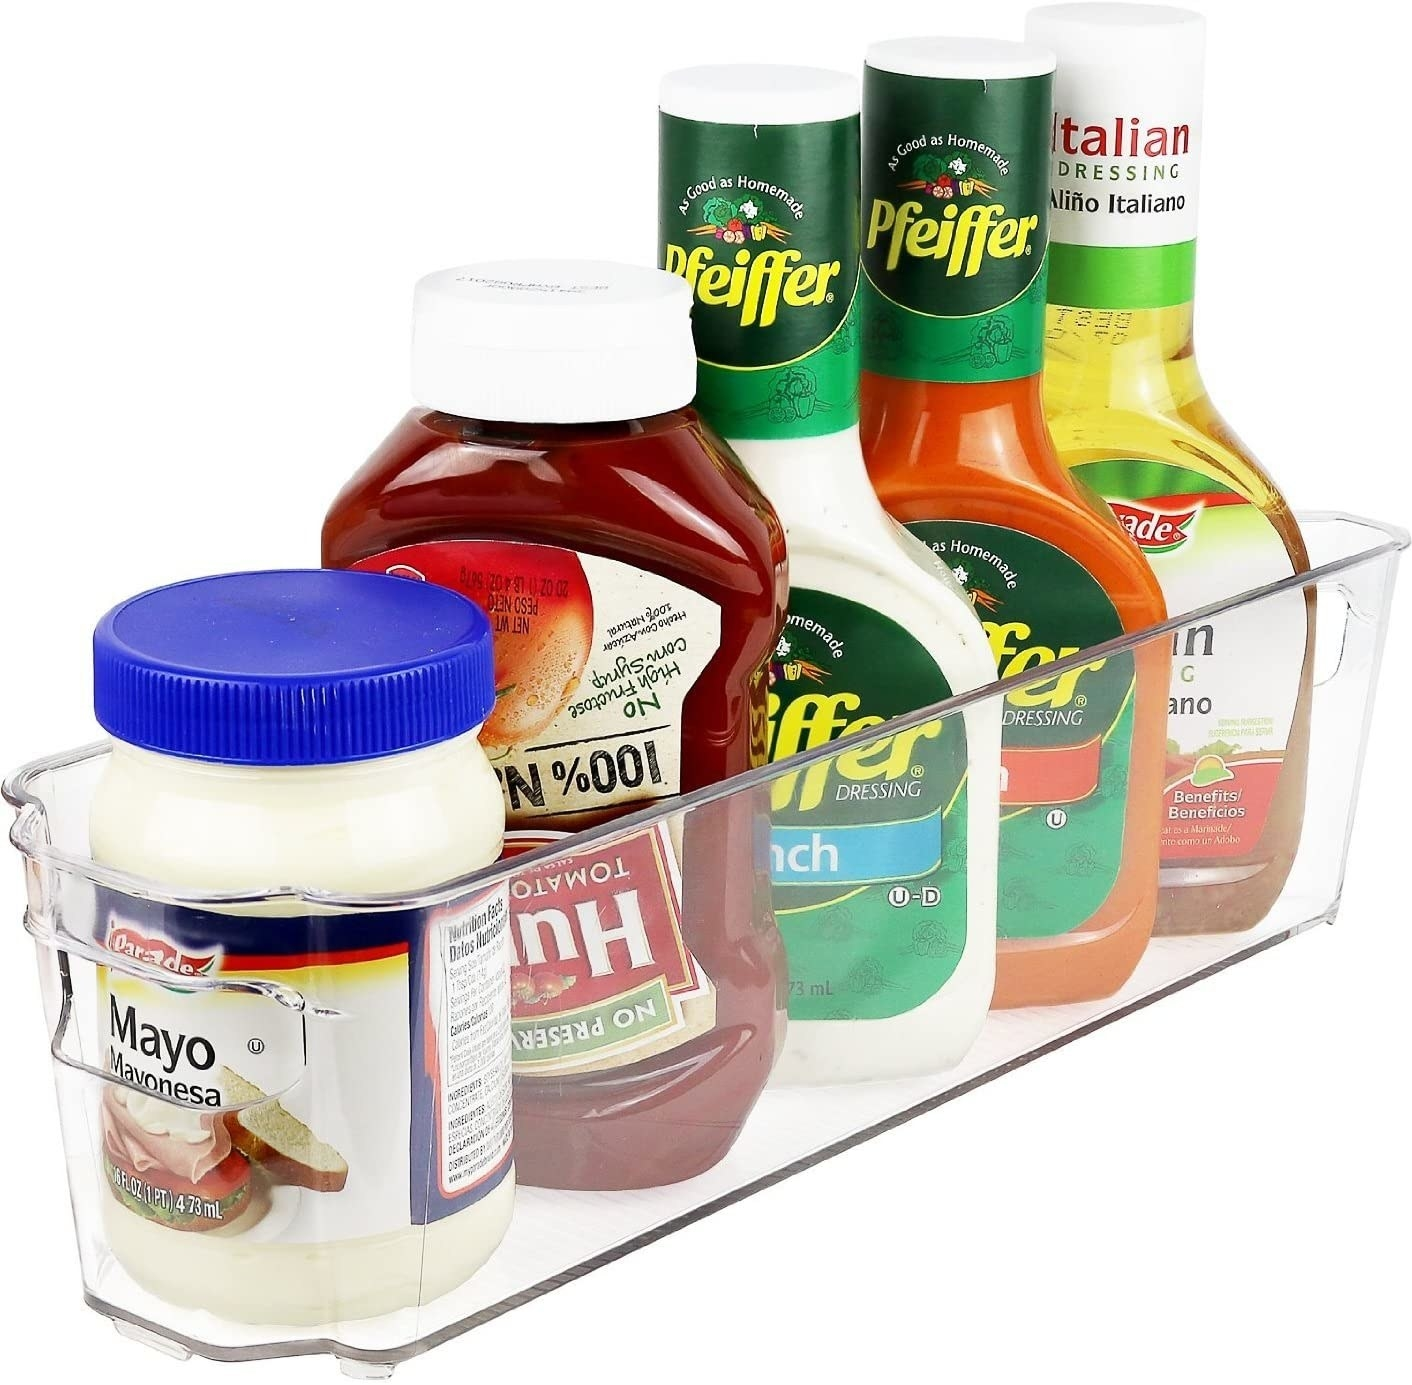 A clear container holding several condiment bottles